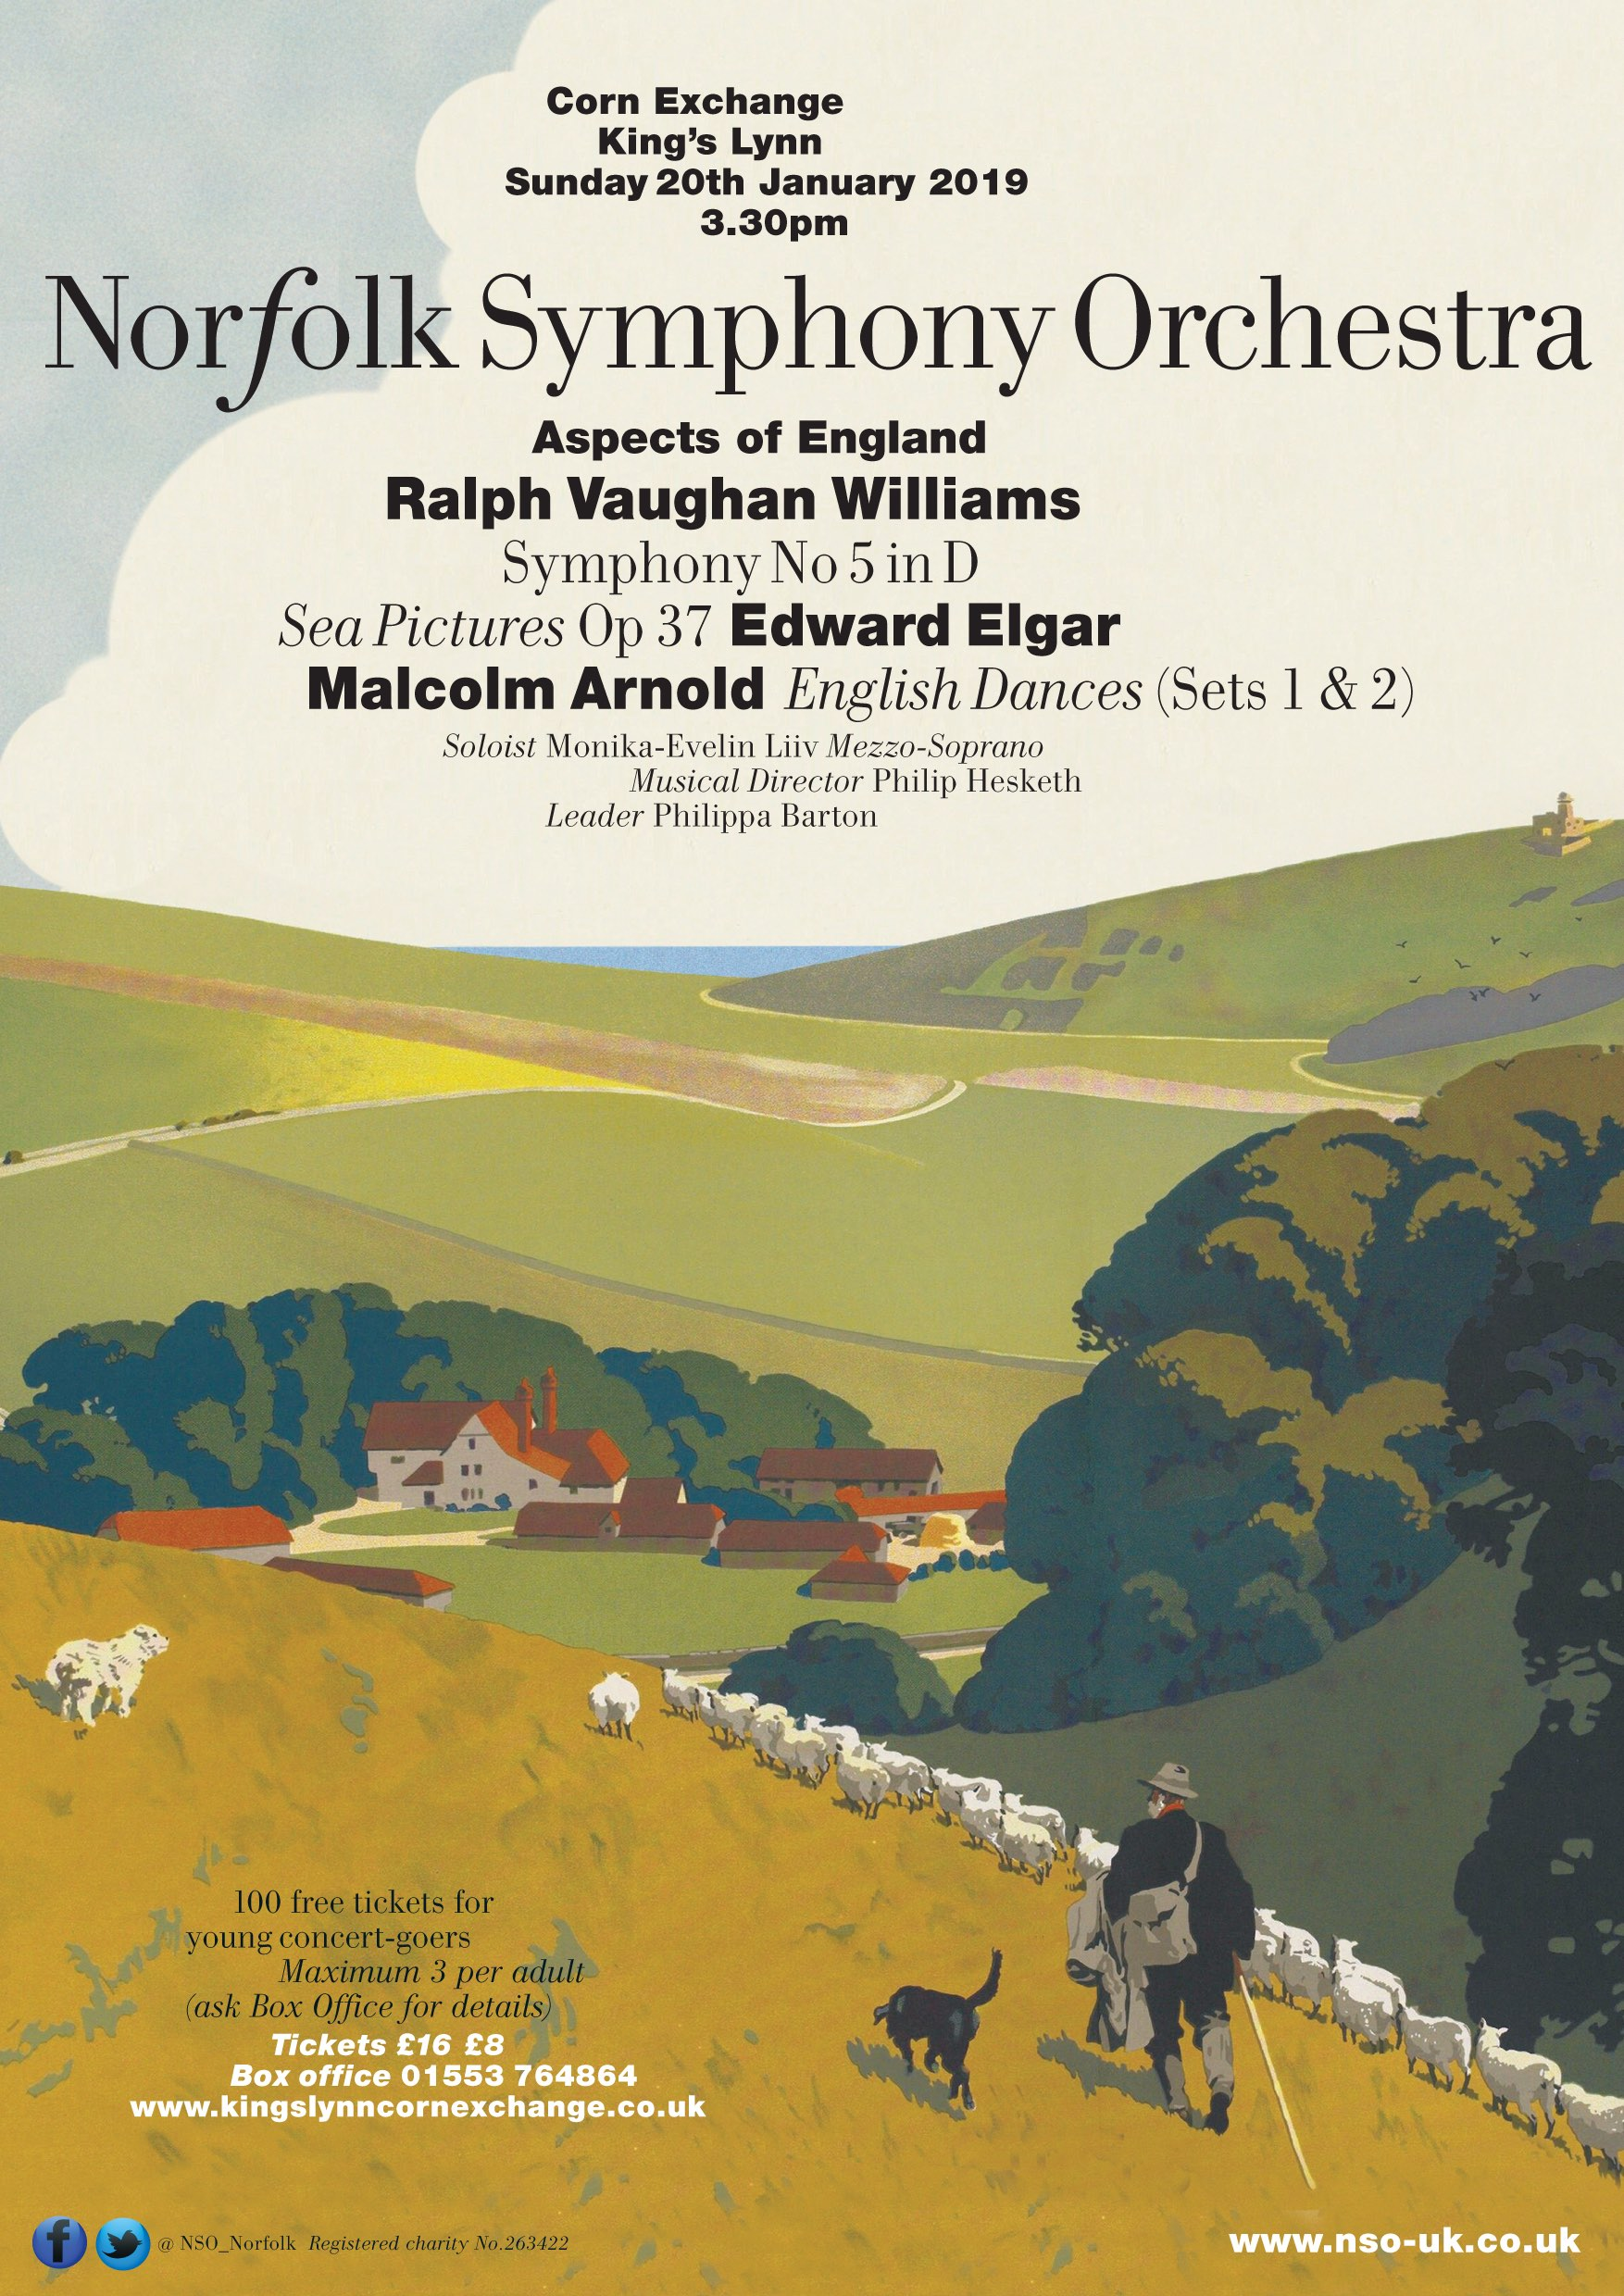 Norfolk Symphony Orchestra | Aspects of England, Our vision of England has many faces and this music seeks to express them. In this programme we play quintessentially English music by three composers, each from a different generation: Elgar, Vaughan Williams and Malcolm Arnold | Corn Exchange King�s Lynn, Tuesday Market Place,  PE30 1JW